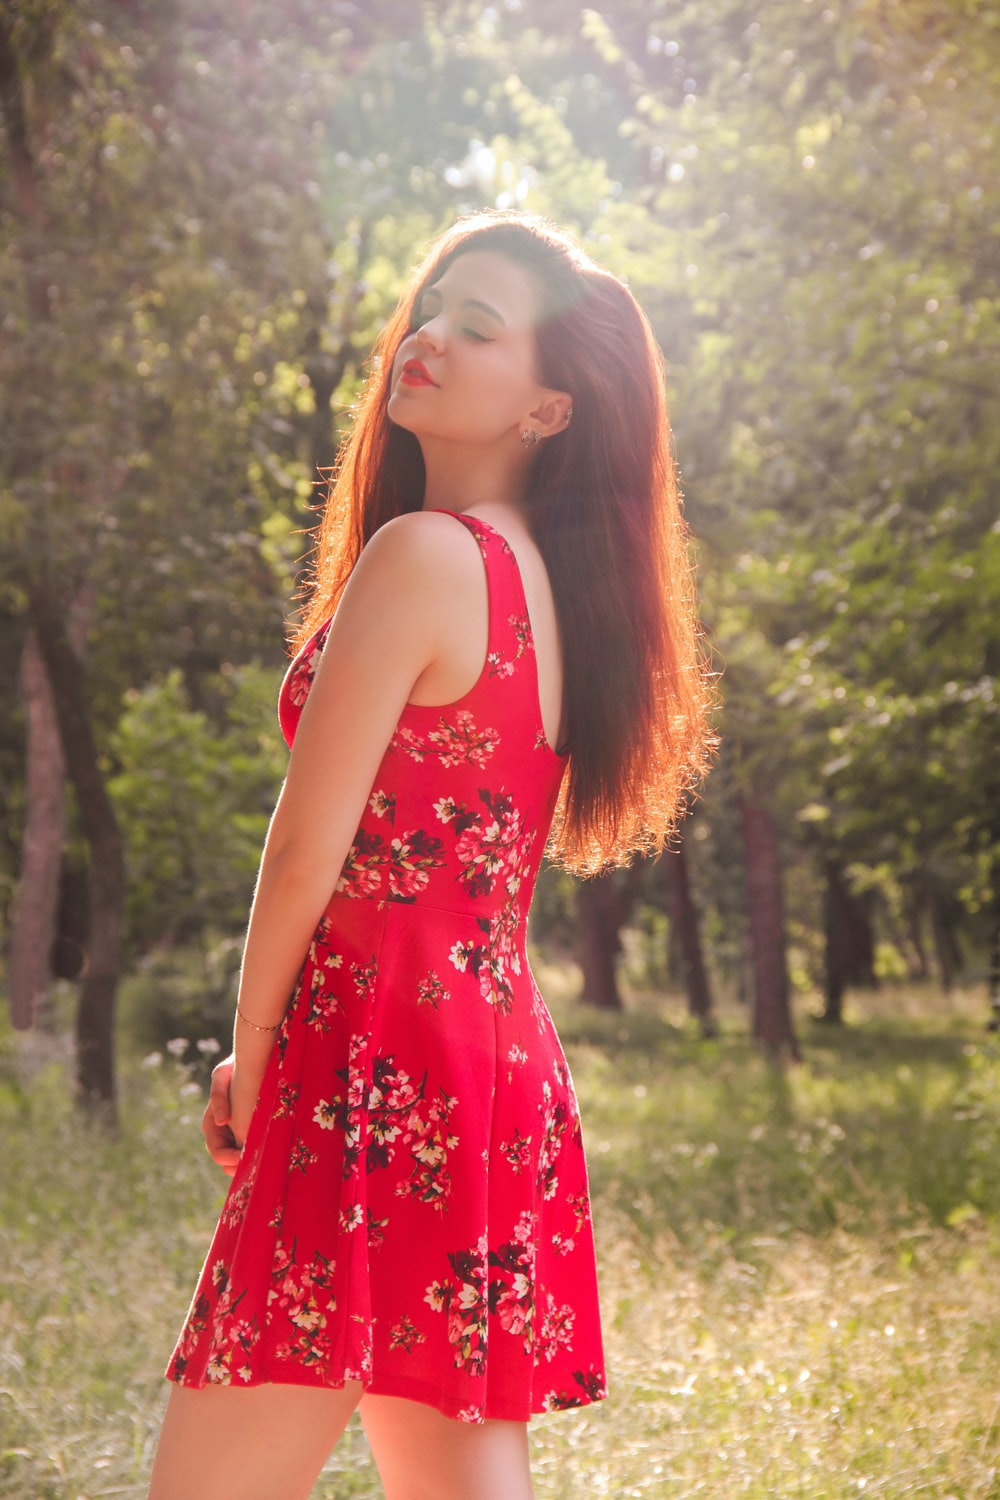 woman in red floral dress standing on green grass field during daytime